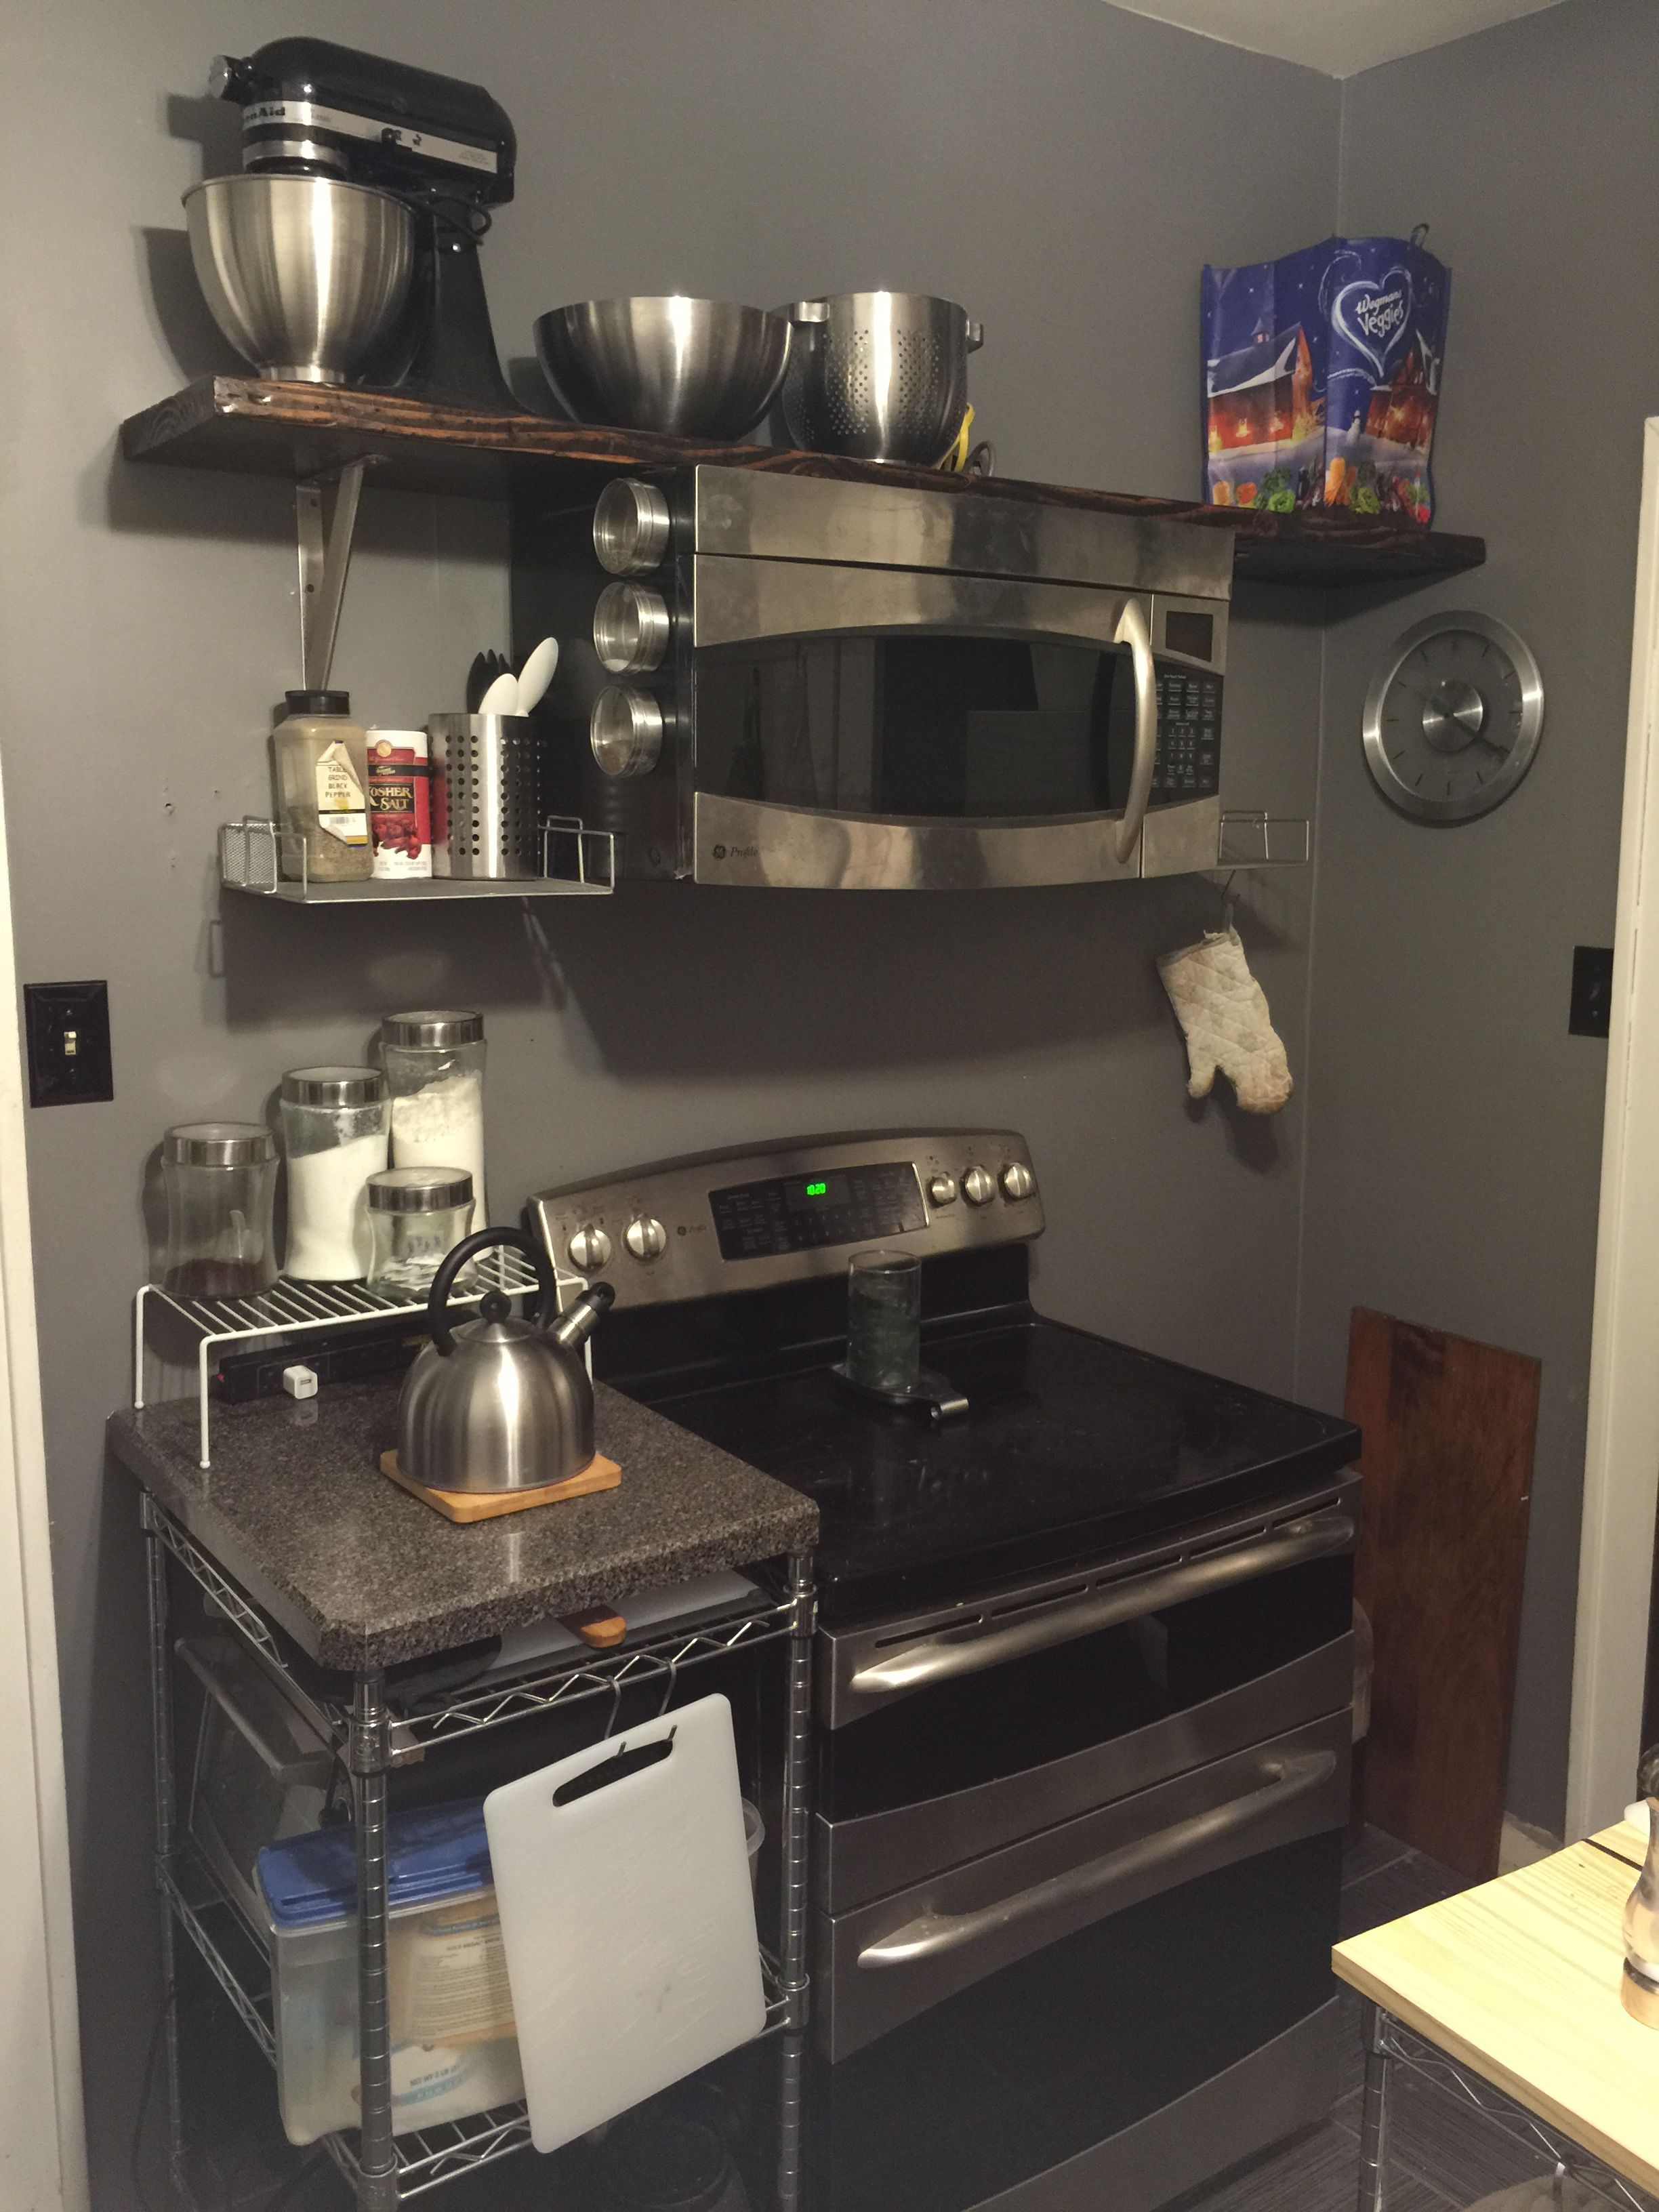 Open Shelf Instead Of Cupboard Above Stove; Microwave Mounted To Shelf;  Metal Rack Instead Of Cabinets; Everything Is Open And Easily Accessible